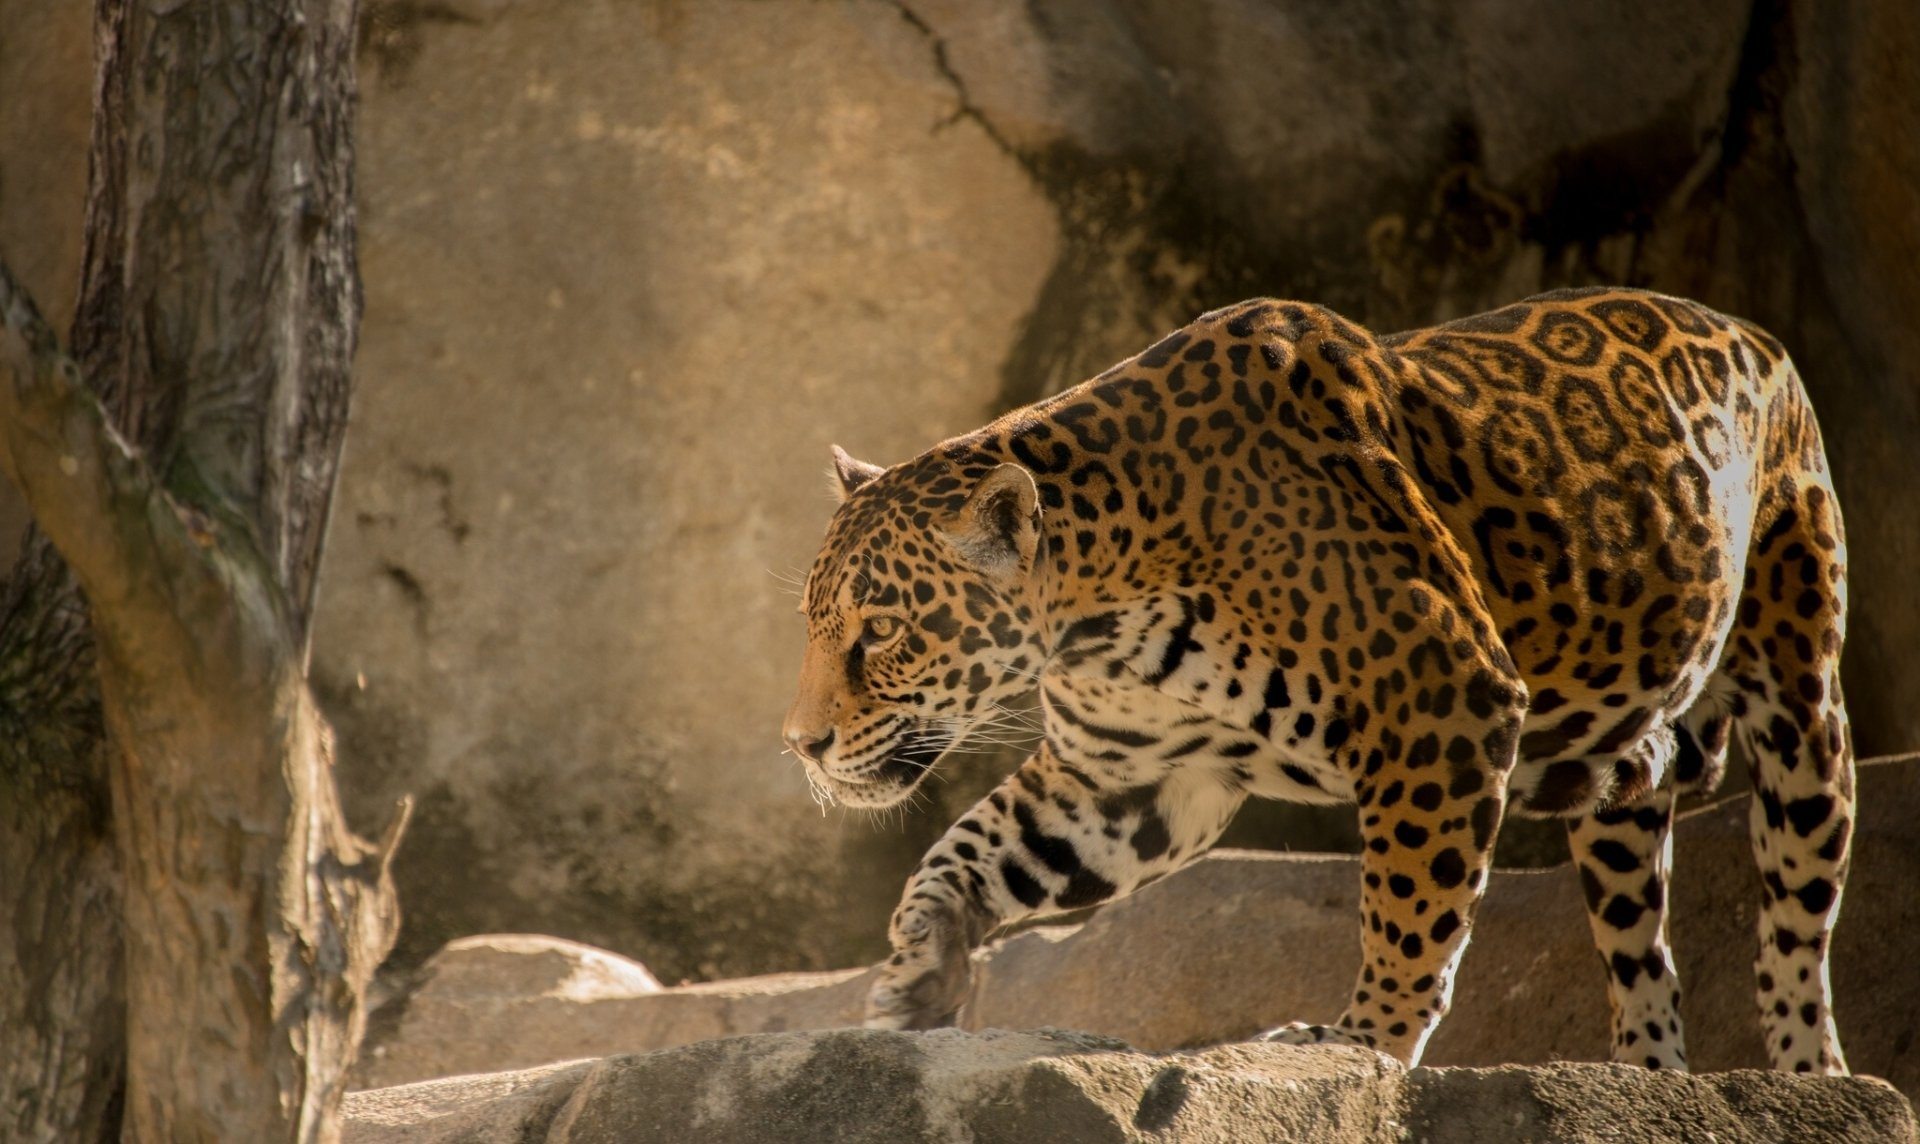 Facination full hd wallpaper and background image - Jaguar animal hd wallpapers ...